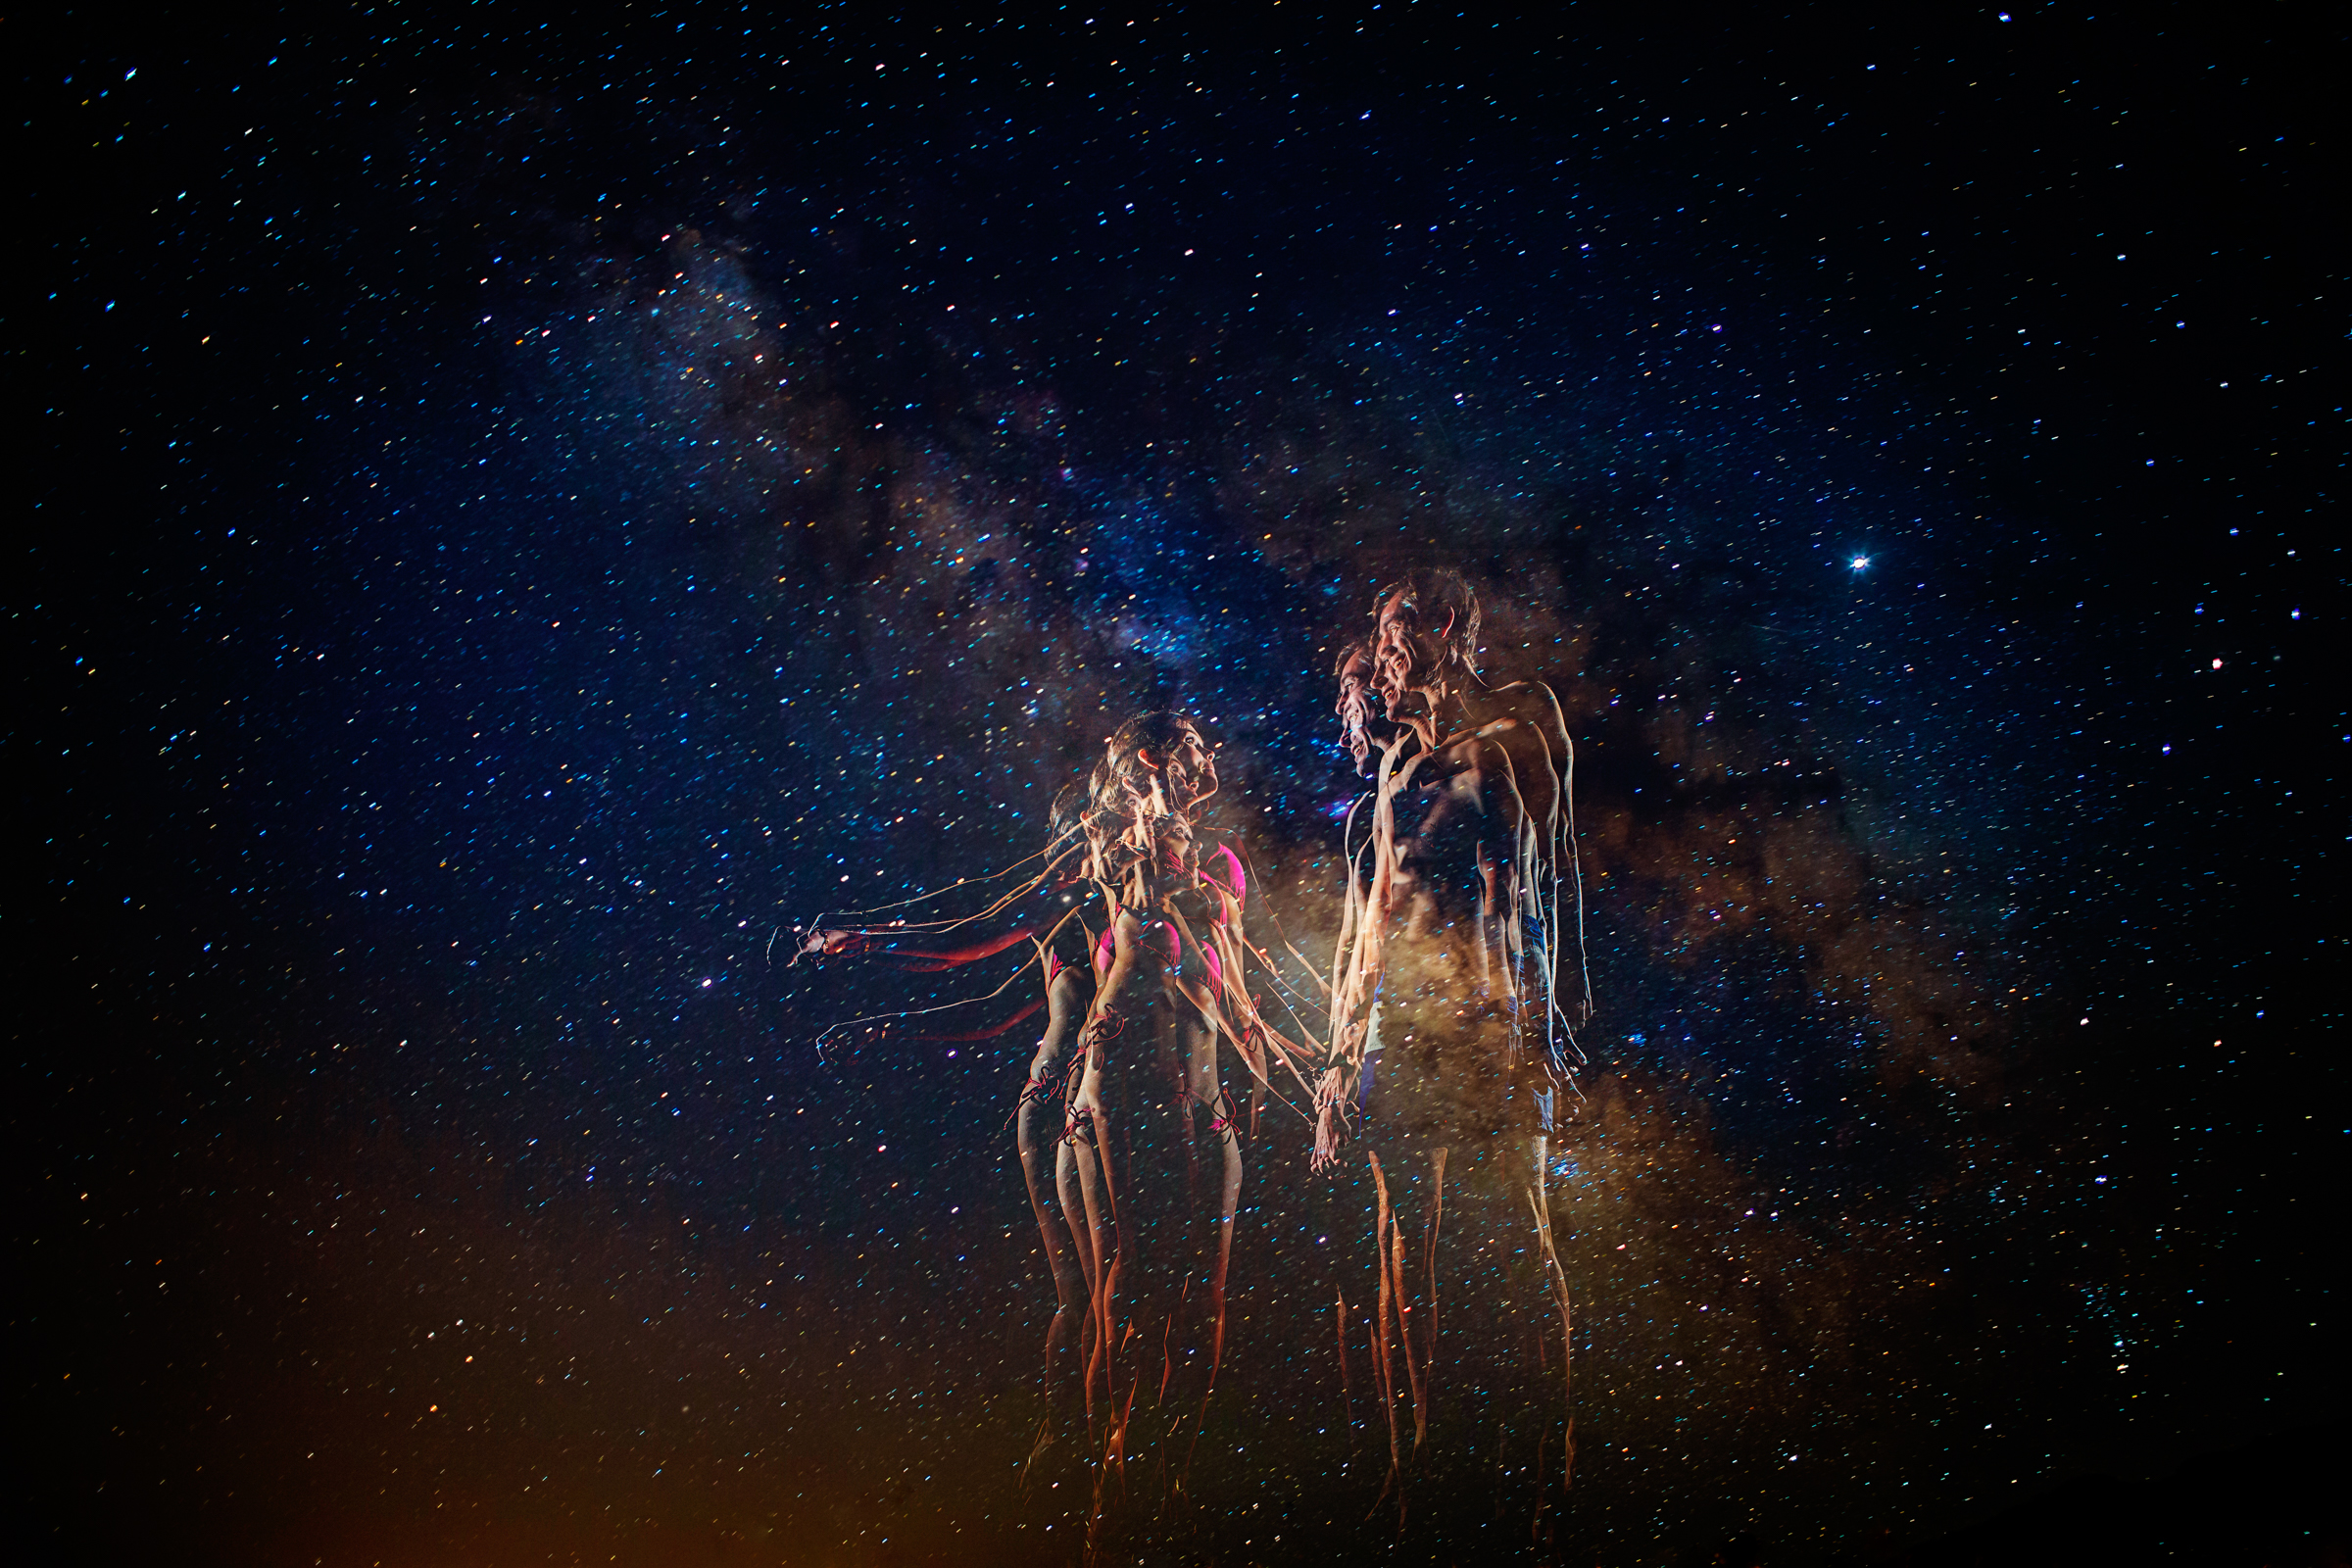 Slow exposure of couple outlined by lights against night sky - photo by Chrisman Studios